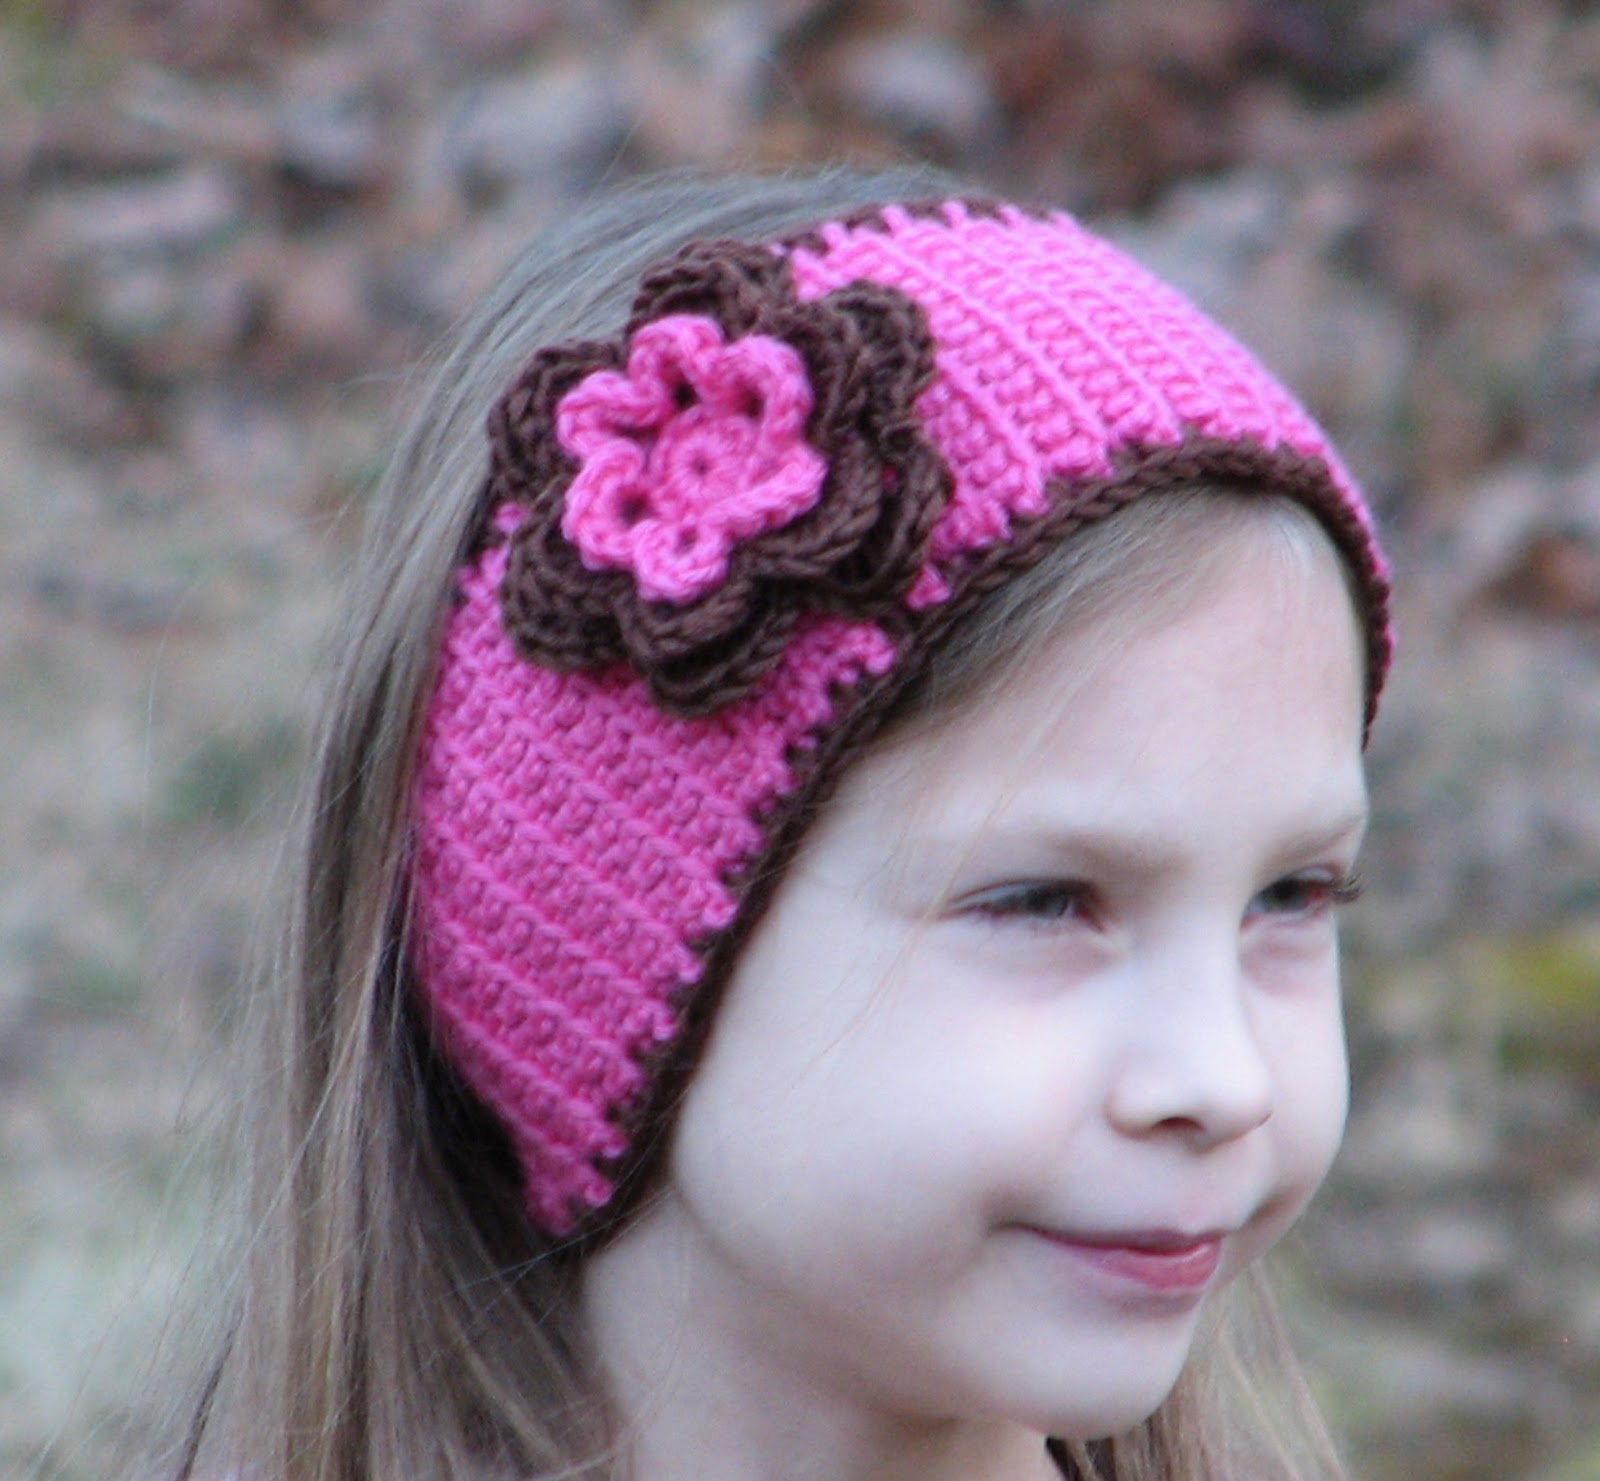 Looking for a crochet head wrap pattern? - Yahoo! Answers